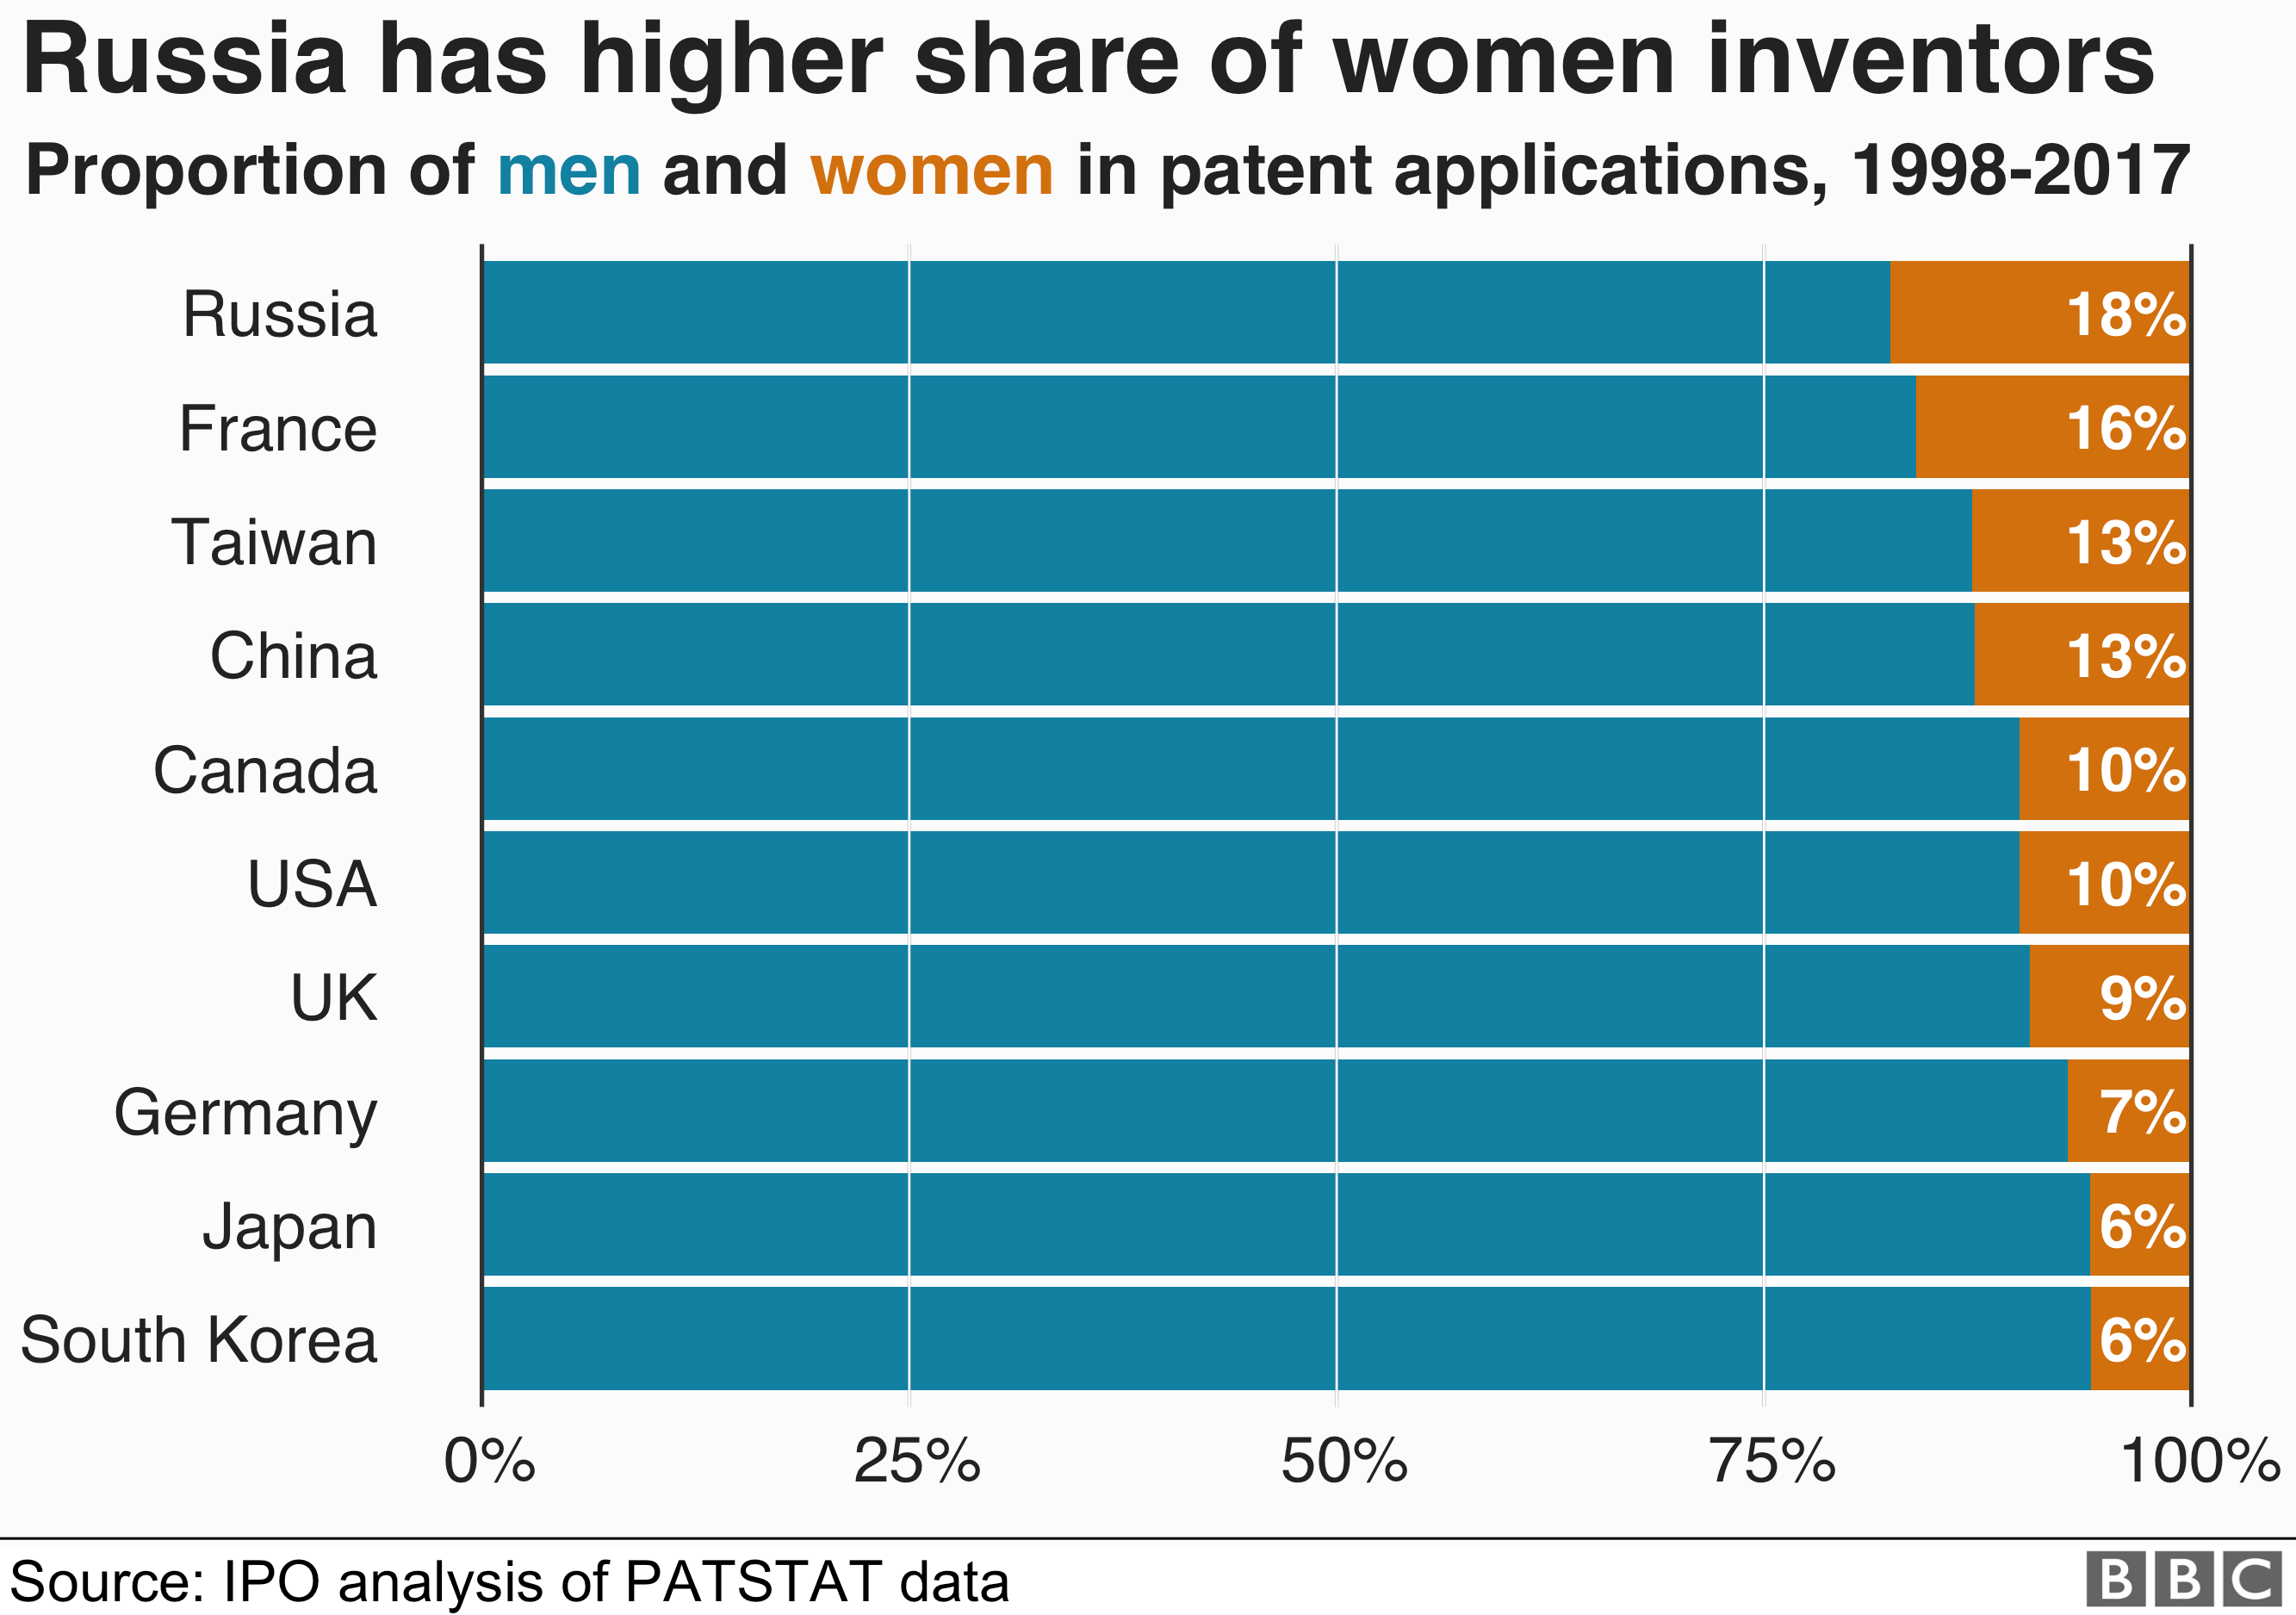 Chart showing that Russia has the highest proportion of female inventors